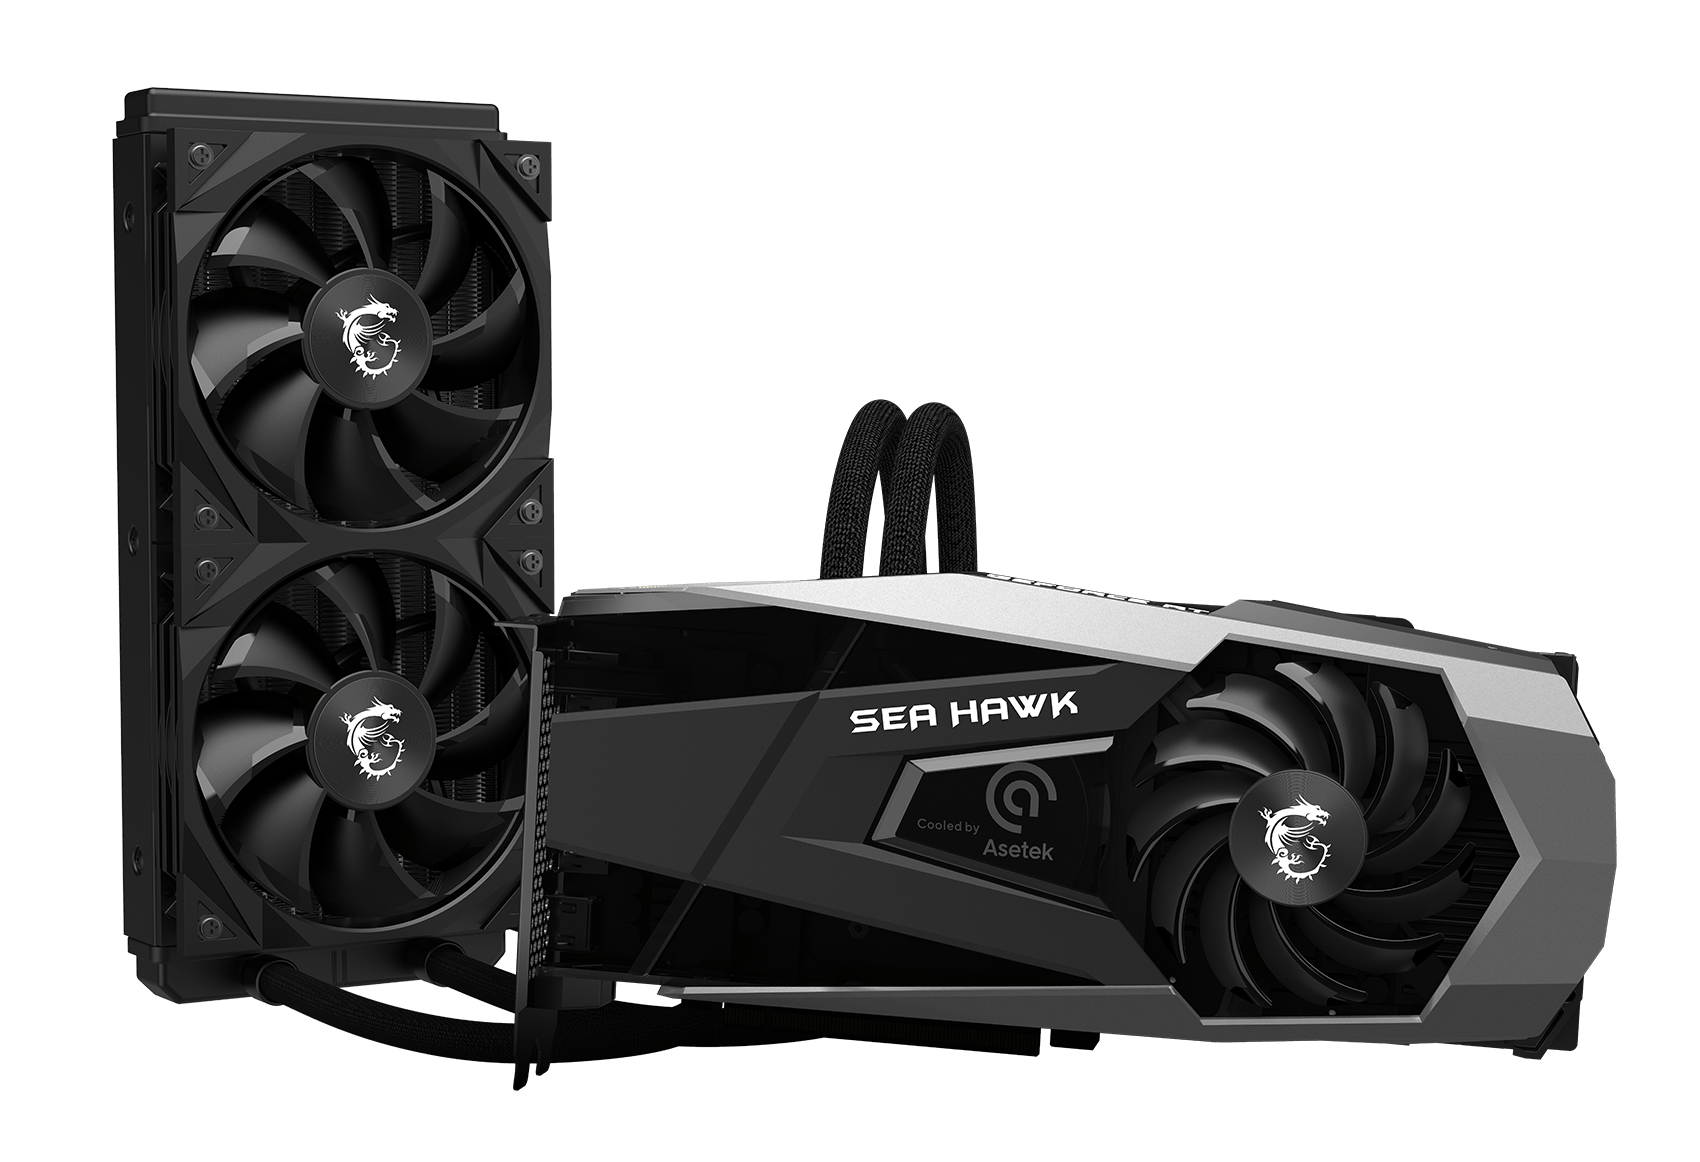 SUPERIOR COOLING